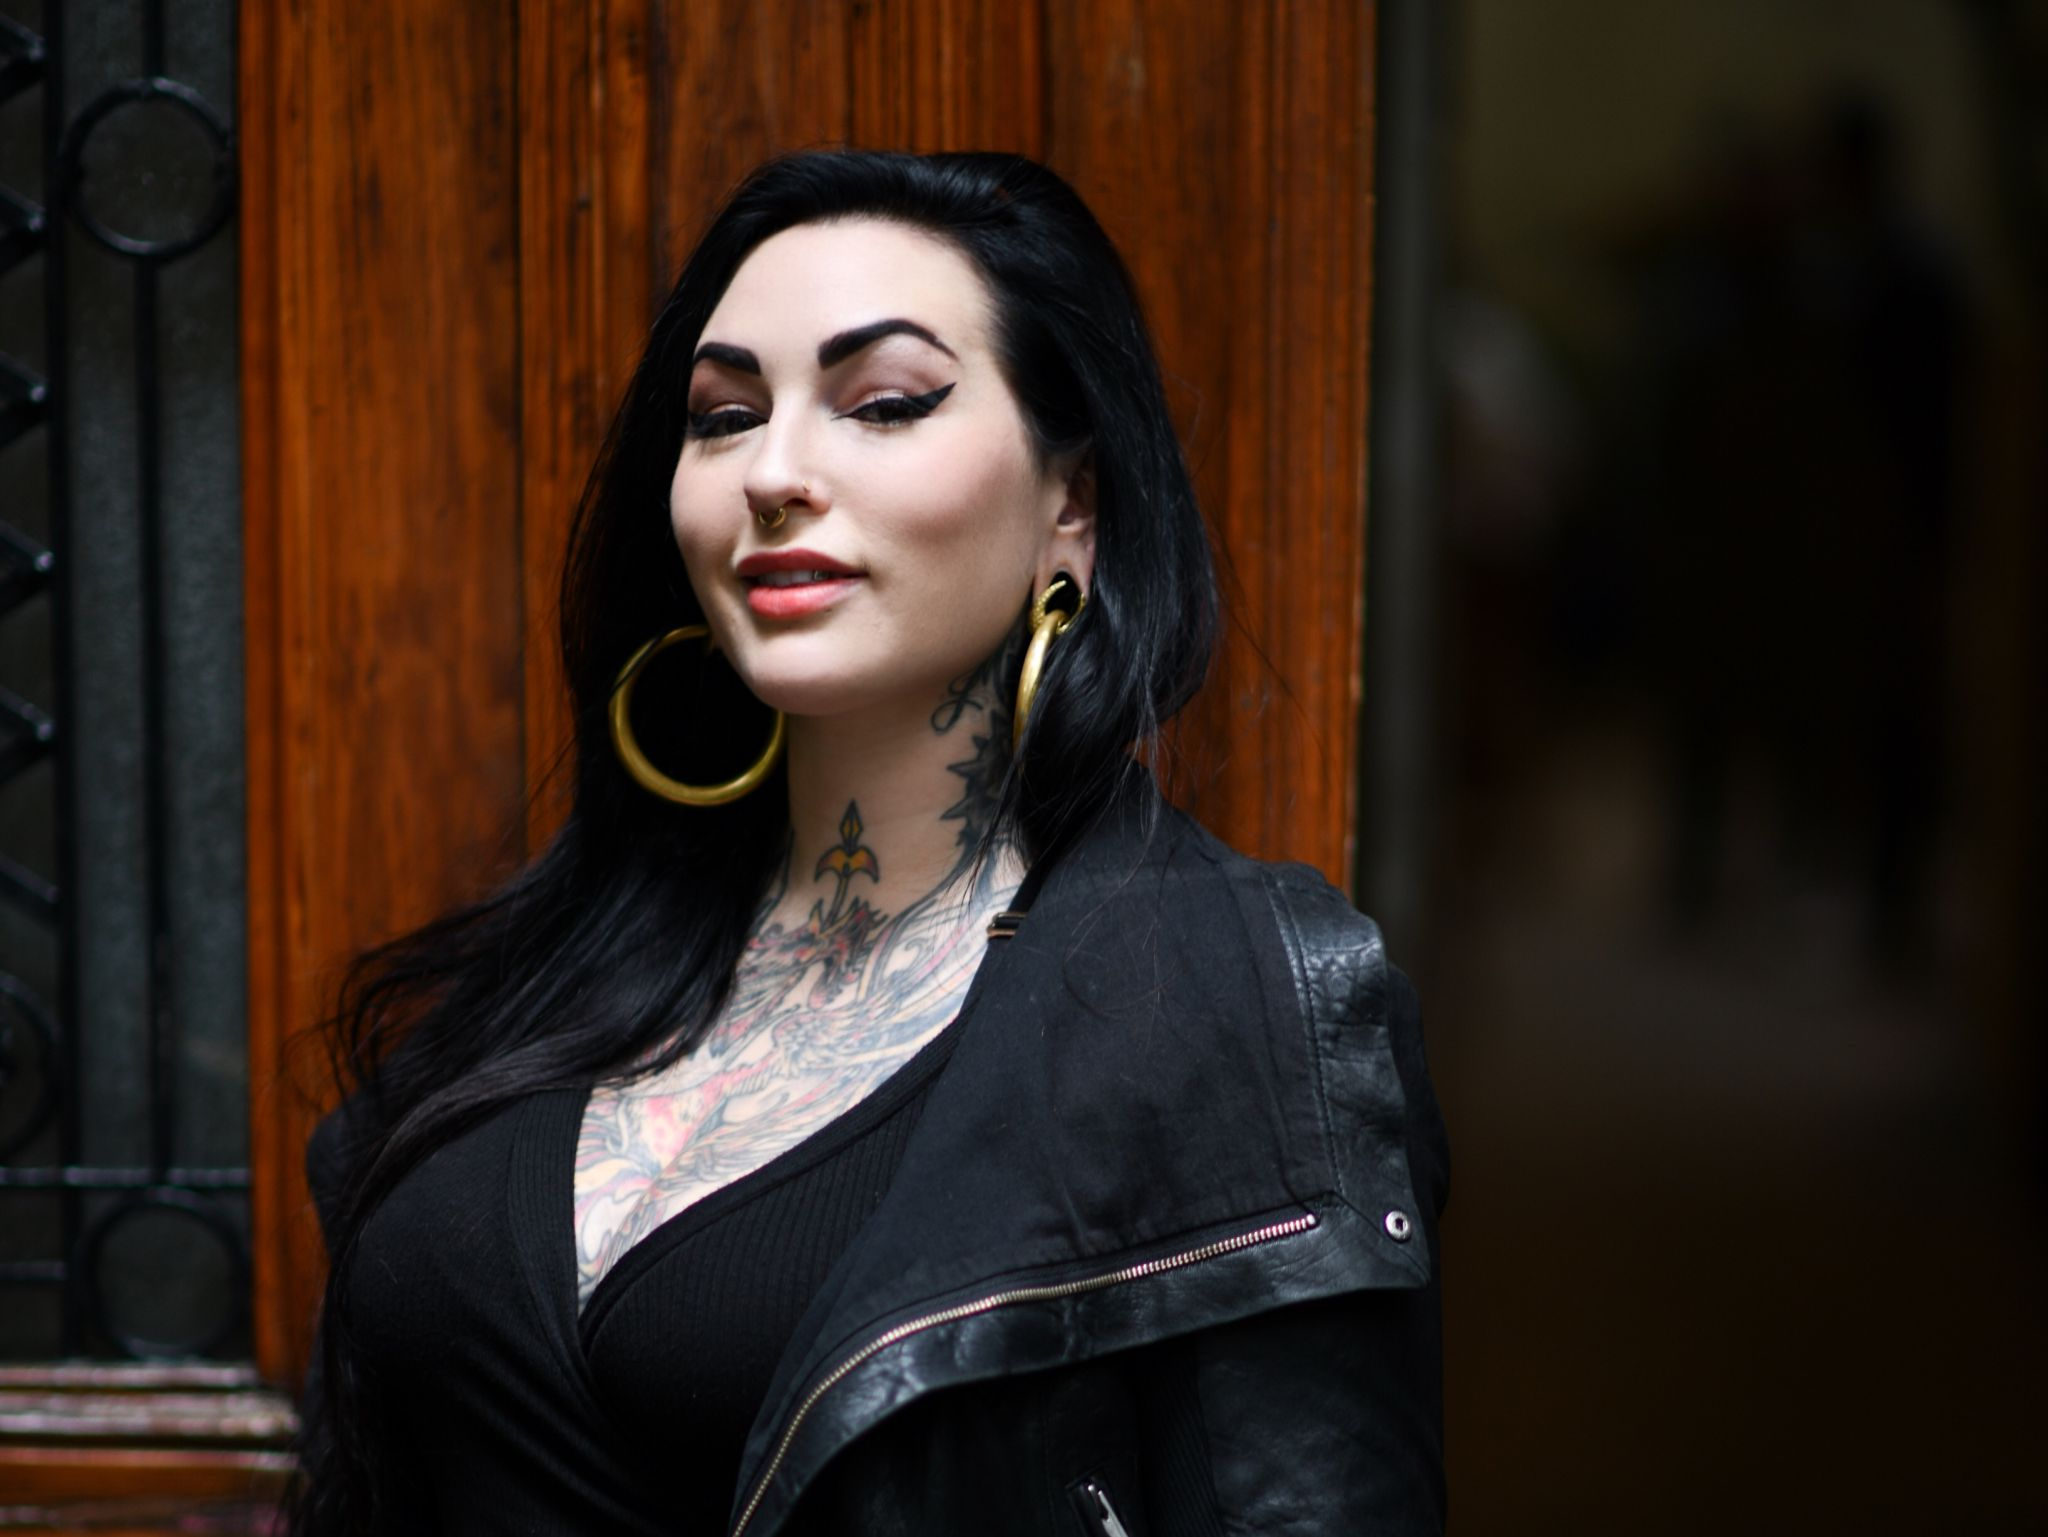 sex workers in the bay area